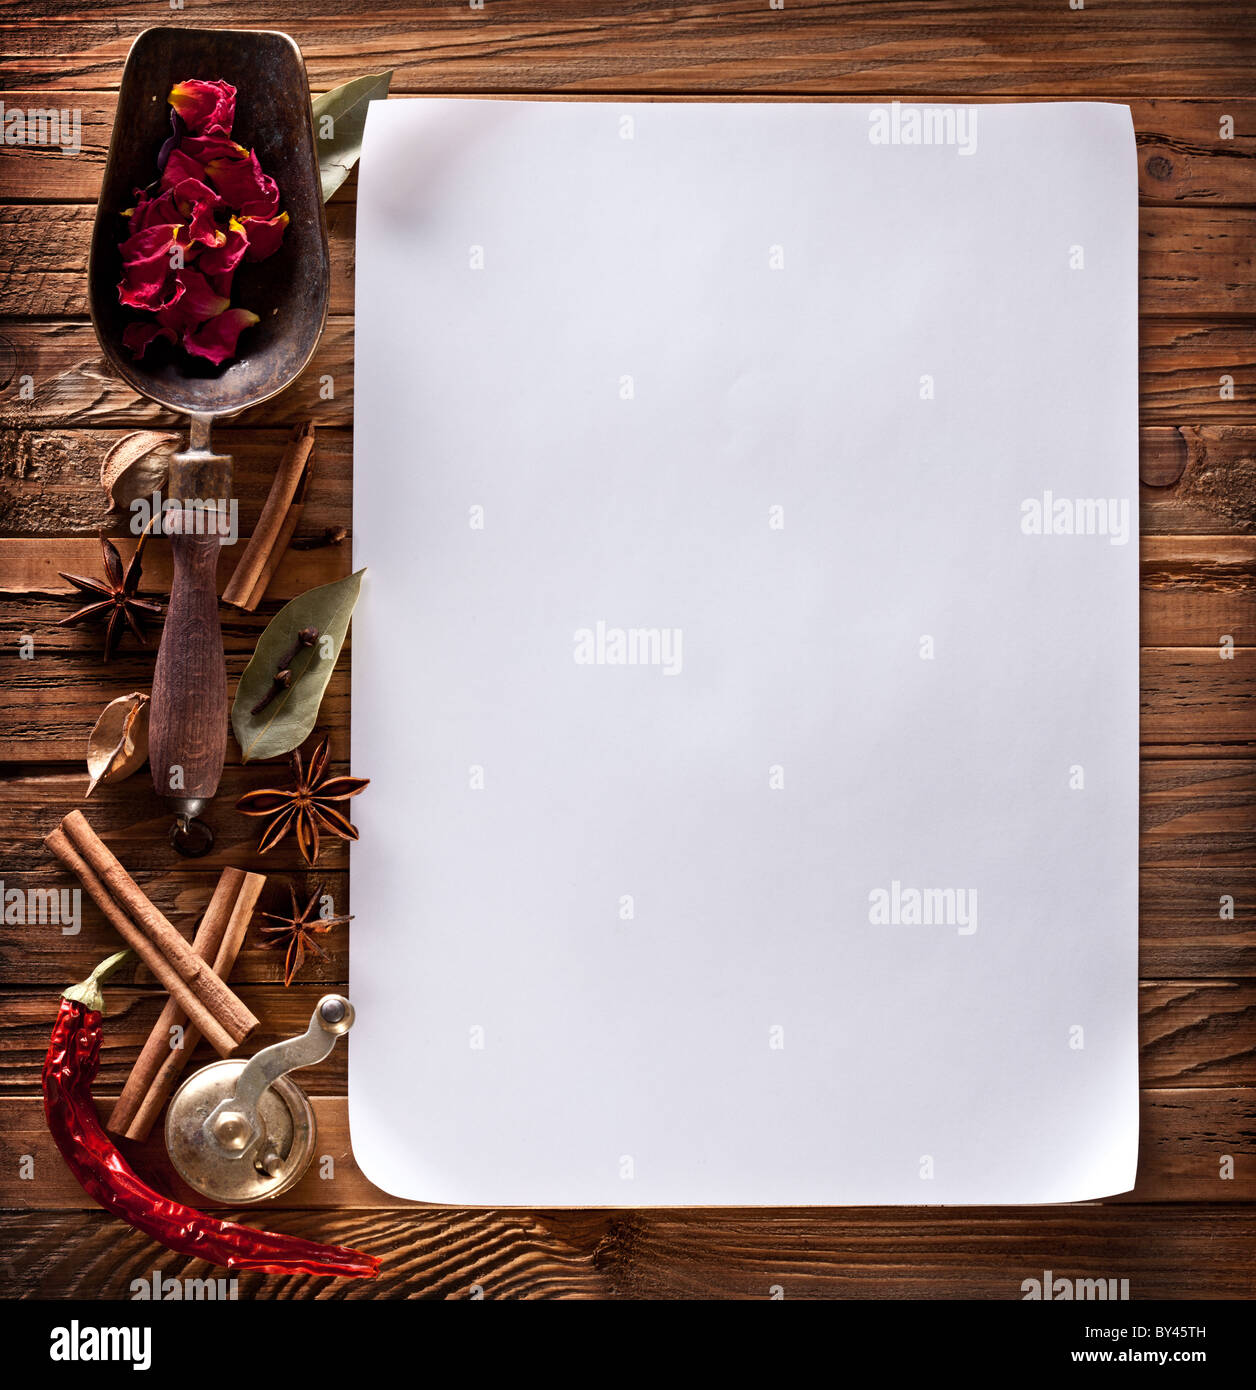 Image of white paper with spices on a wooden surface Stock Photo